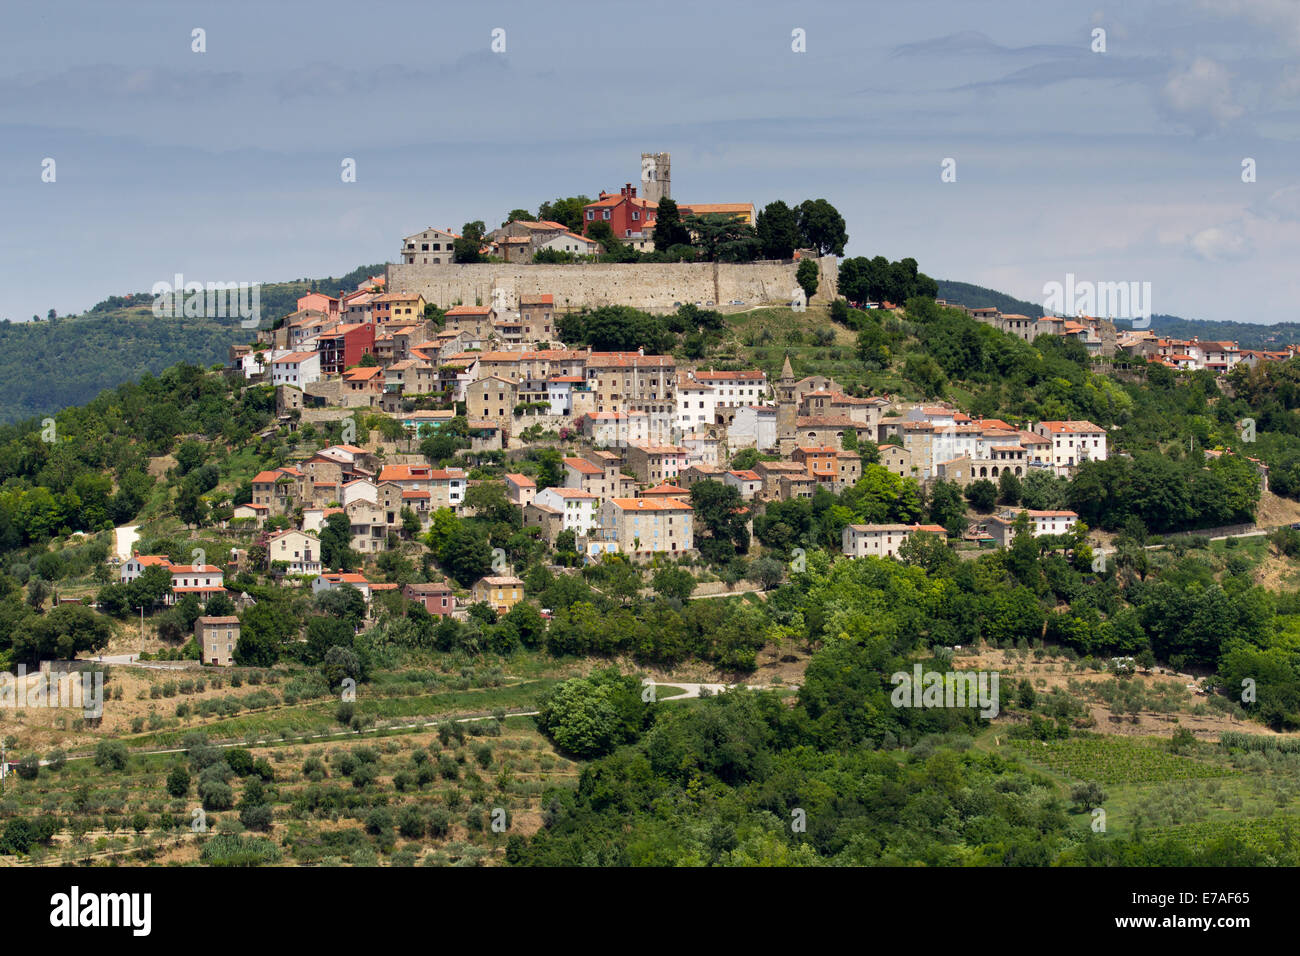 Medieval Croatian town of Motovun Stock Photo